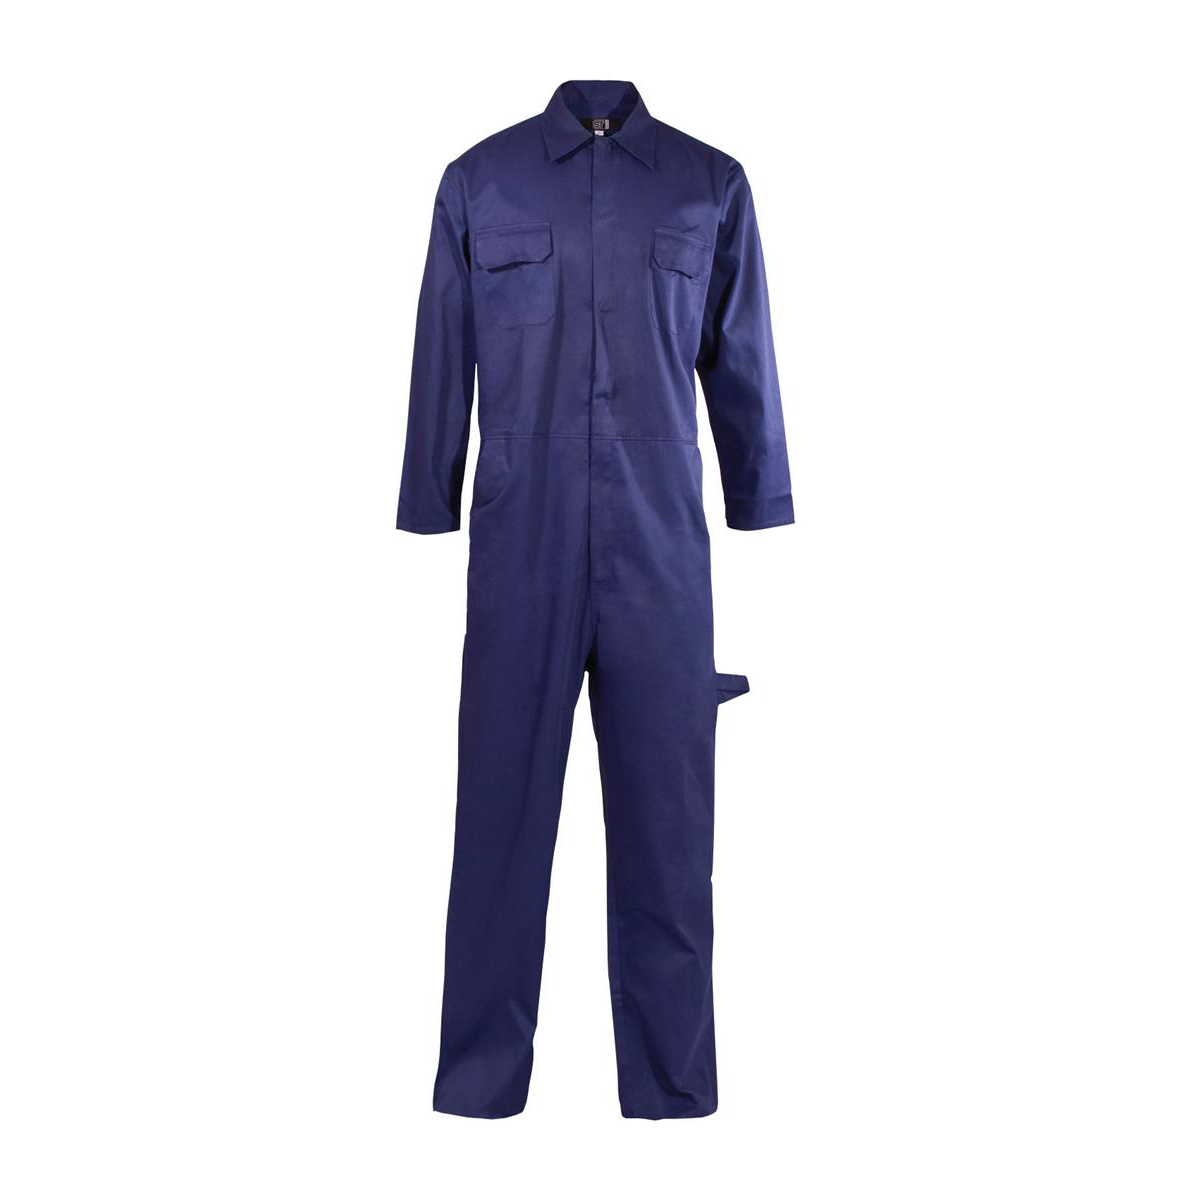 Coverall Basic with Popper Front Opening Polycotton Large Navy *Approx 3 Day Leadtime*